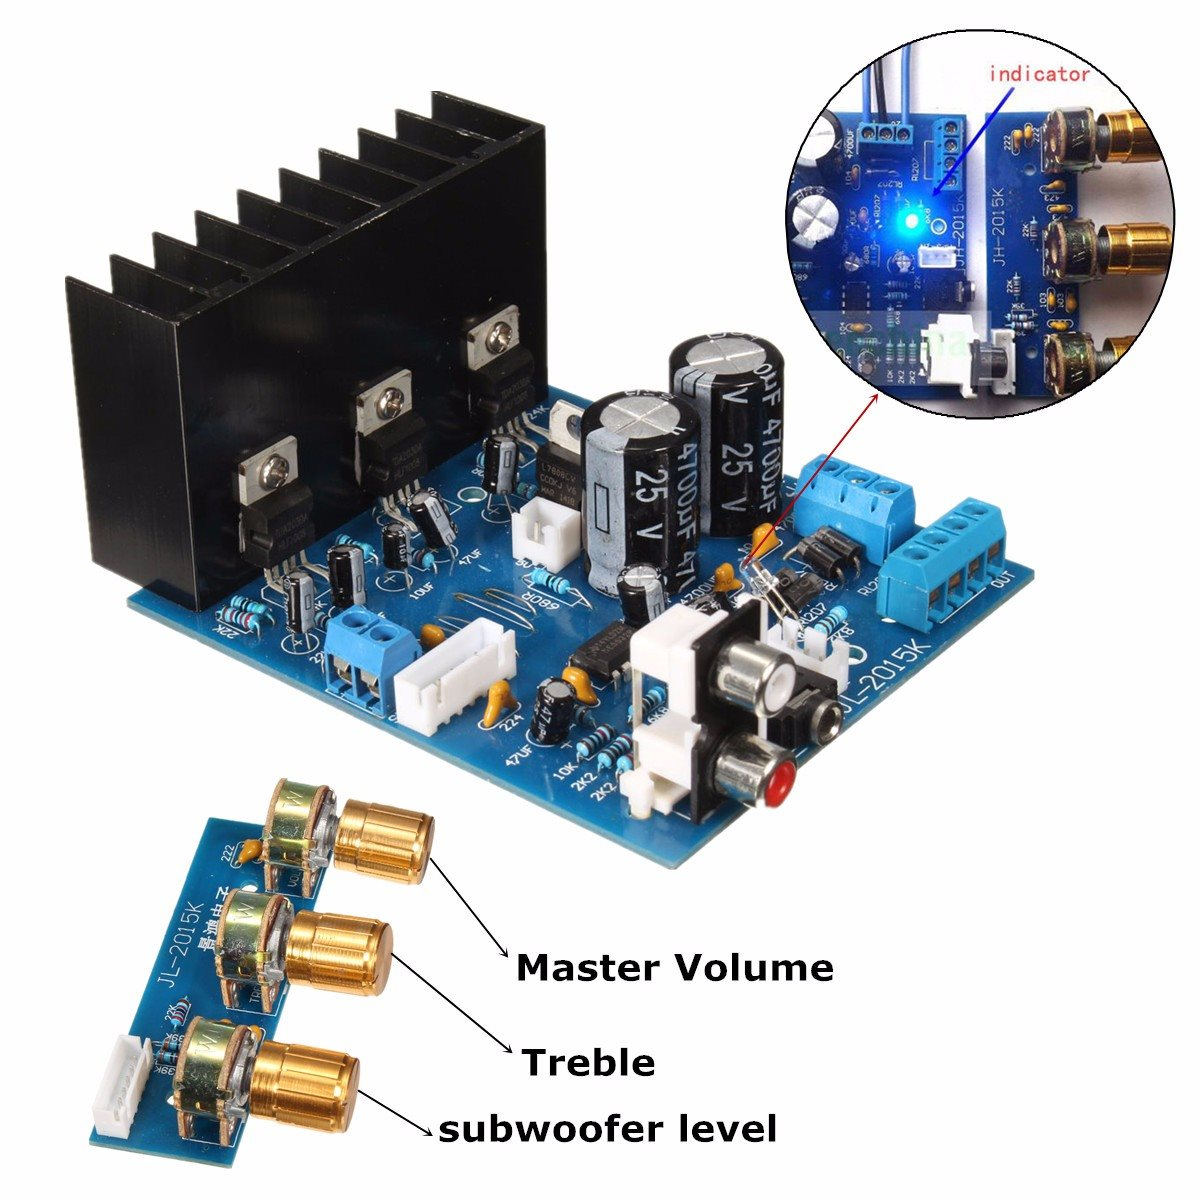 Tda2030a 21 Subwoofer Amplifier Board Ac 12v 3 Channel Electronics 3v To 5v Step Up Converter With Undervoltage Lockout By Lt1073 Circuit Zonecom Electronic Projects Schematics Diy Store Downloads Search